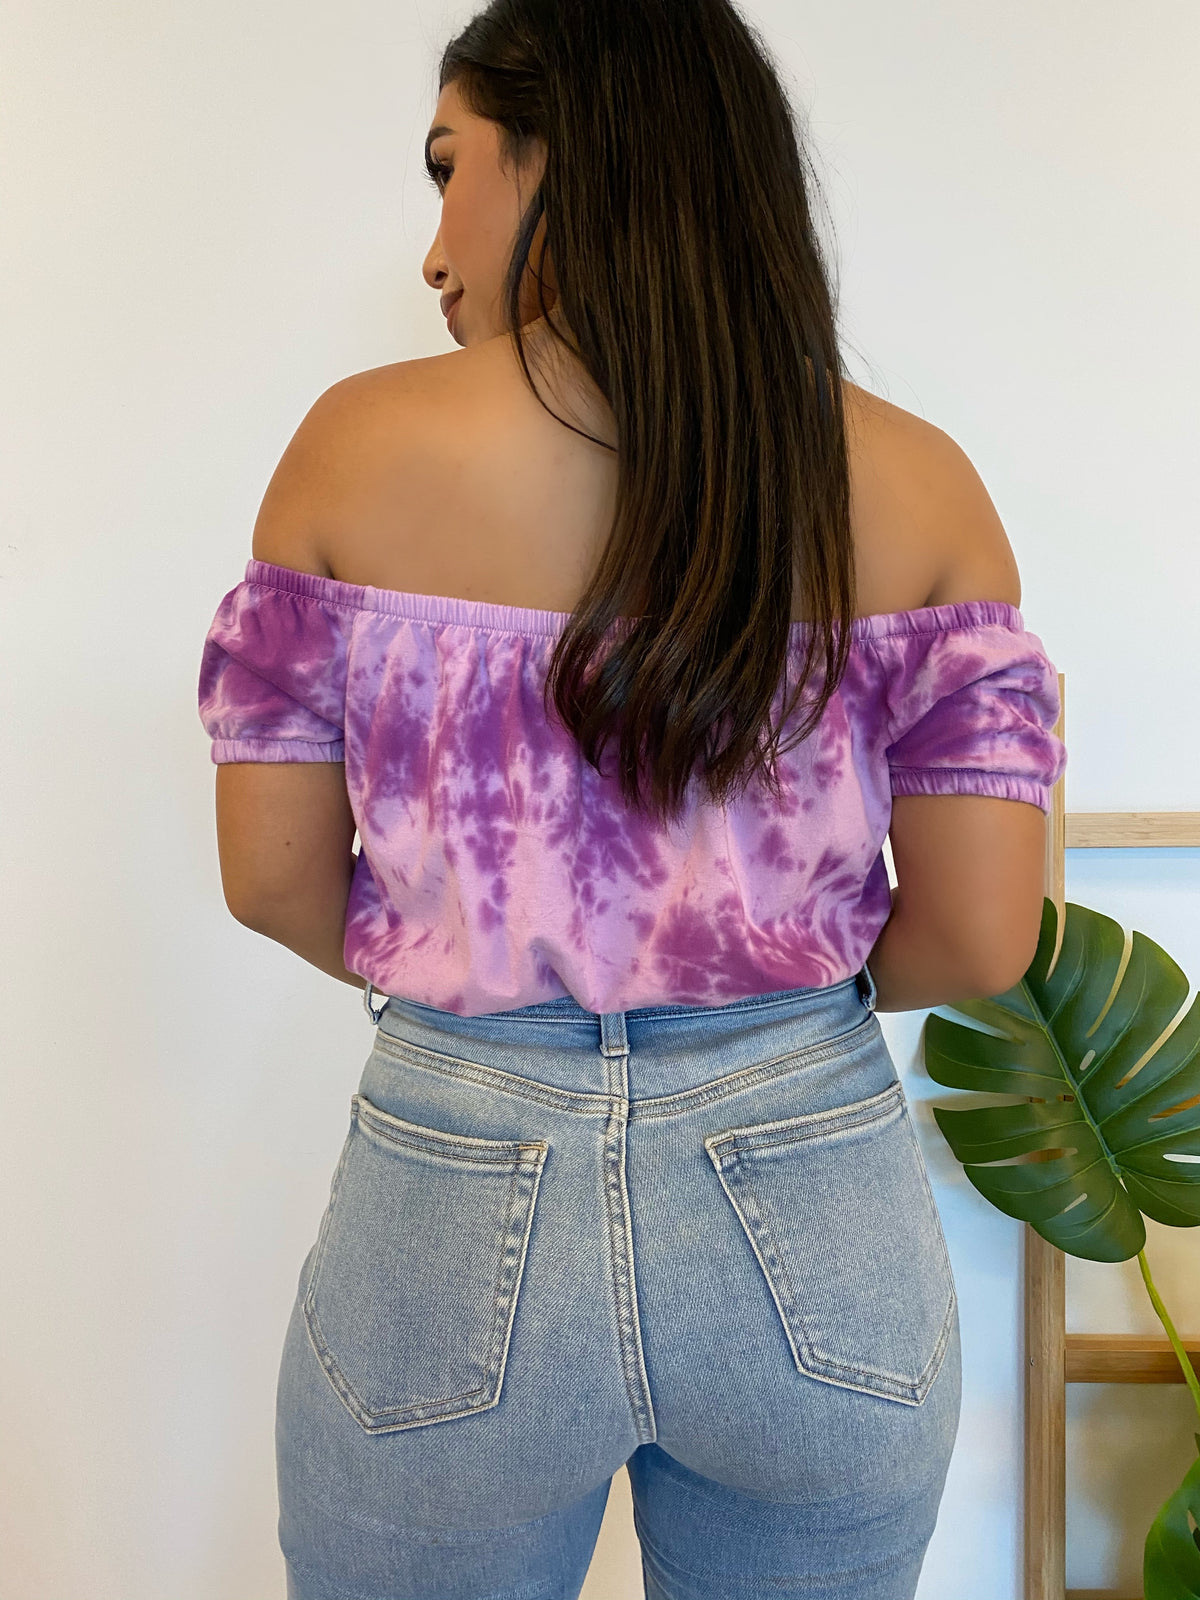 purple tie dye top, off the shoulder, elastic sleeves, above the belly button length